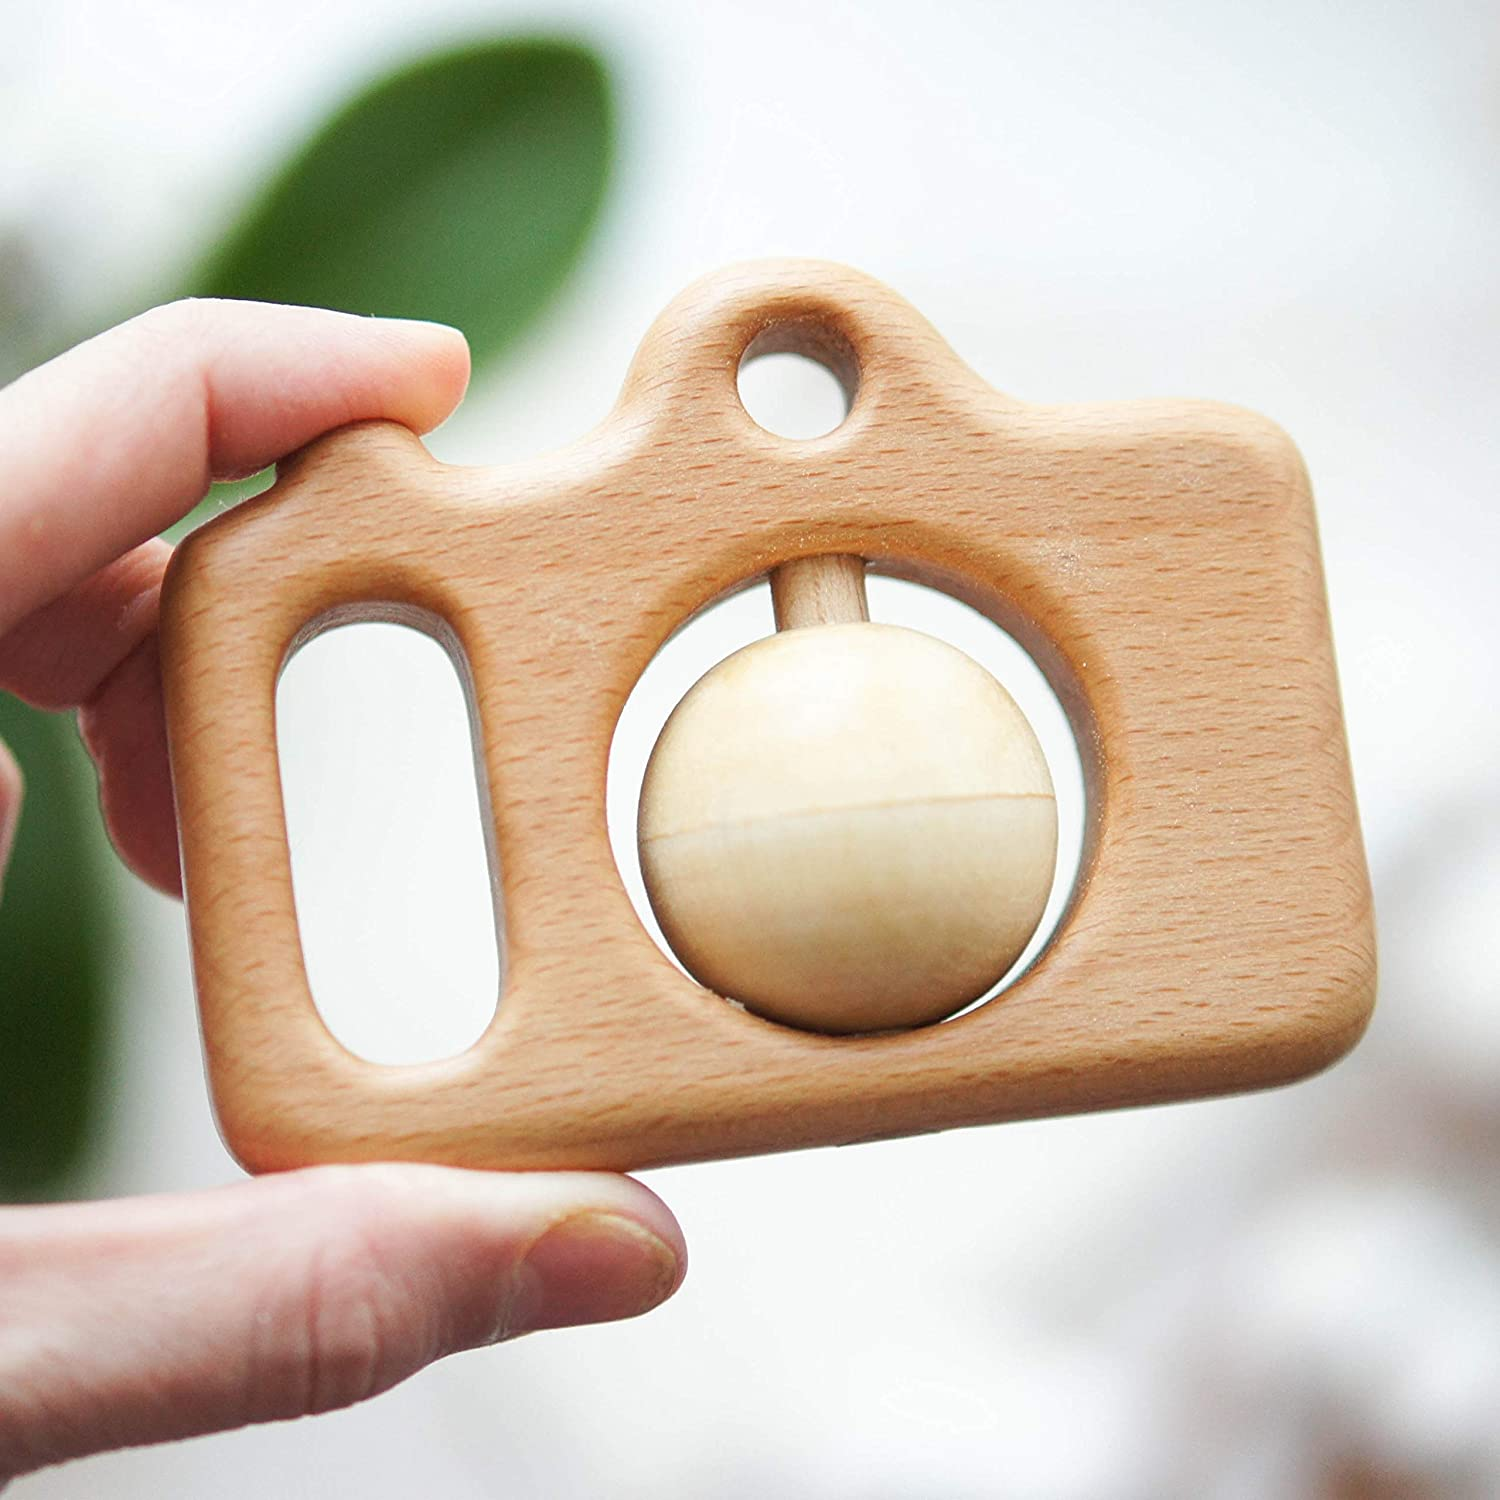 Organic Wooden Hand Carved Camera Rattle with Peas - Baby Shower Gift - Traditional Rattle Toy